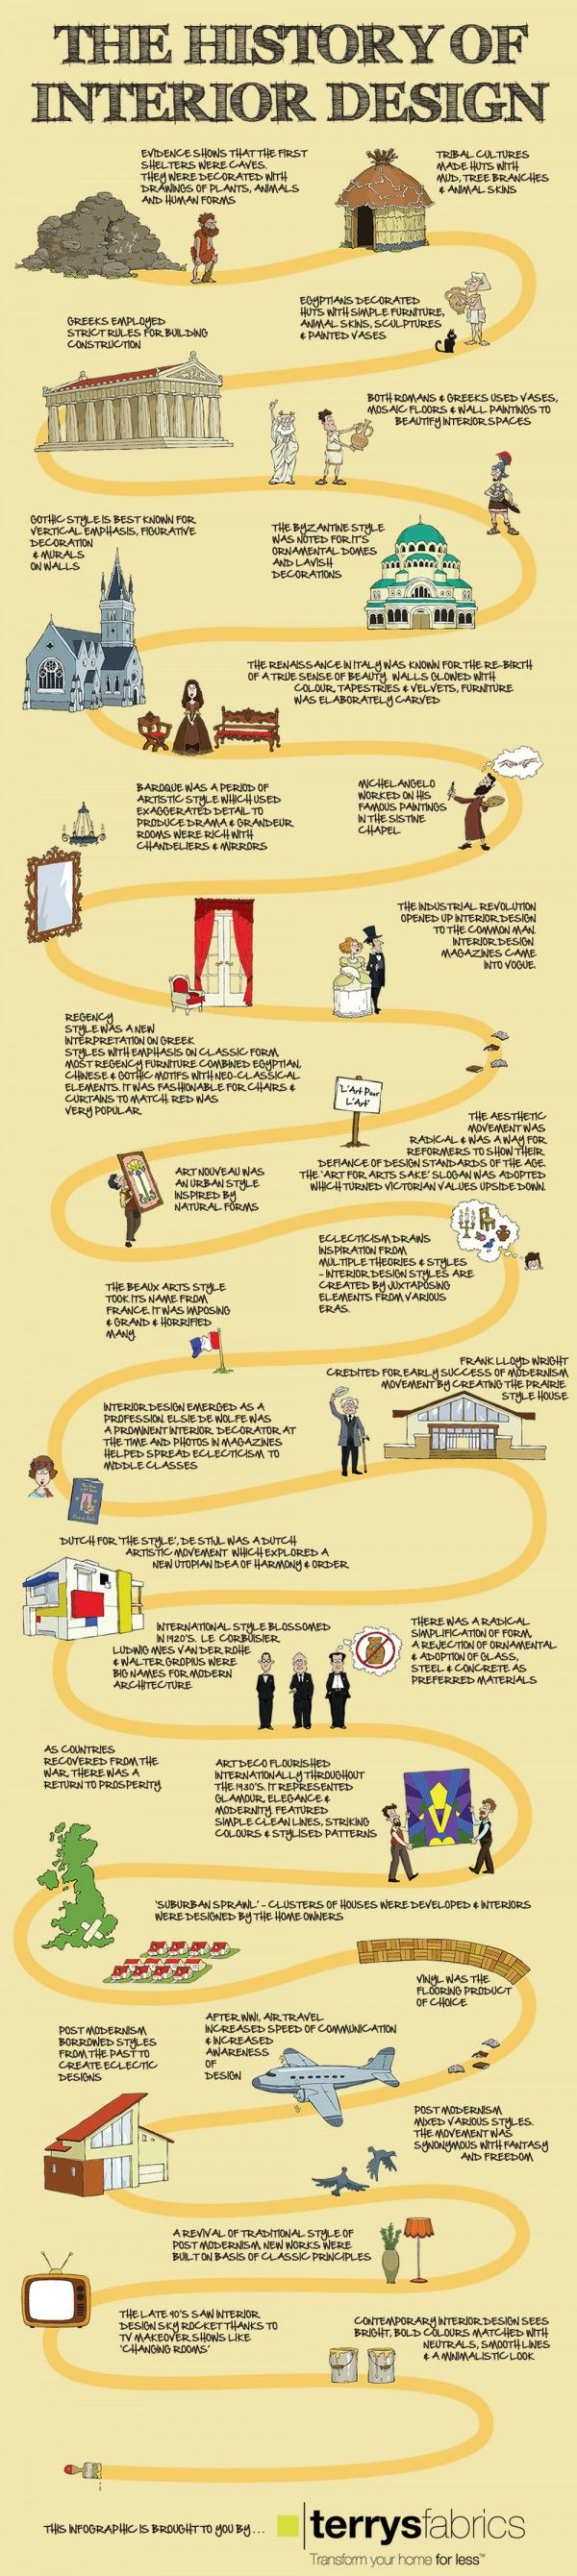 The-history-of-interior-design-infographic